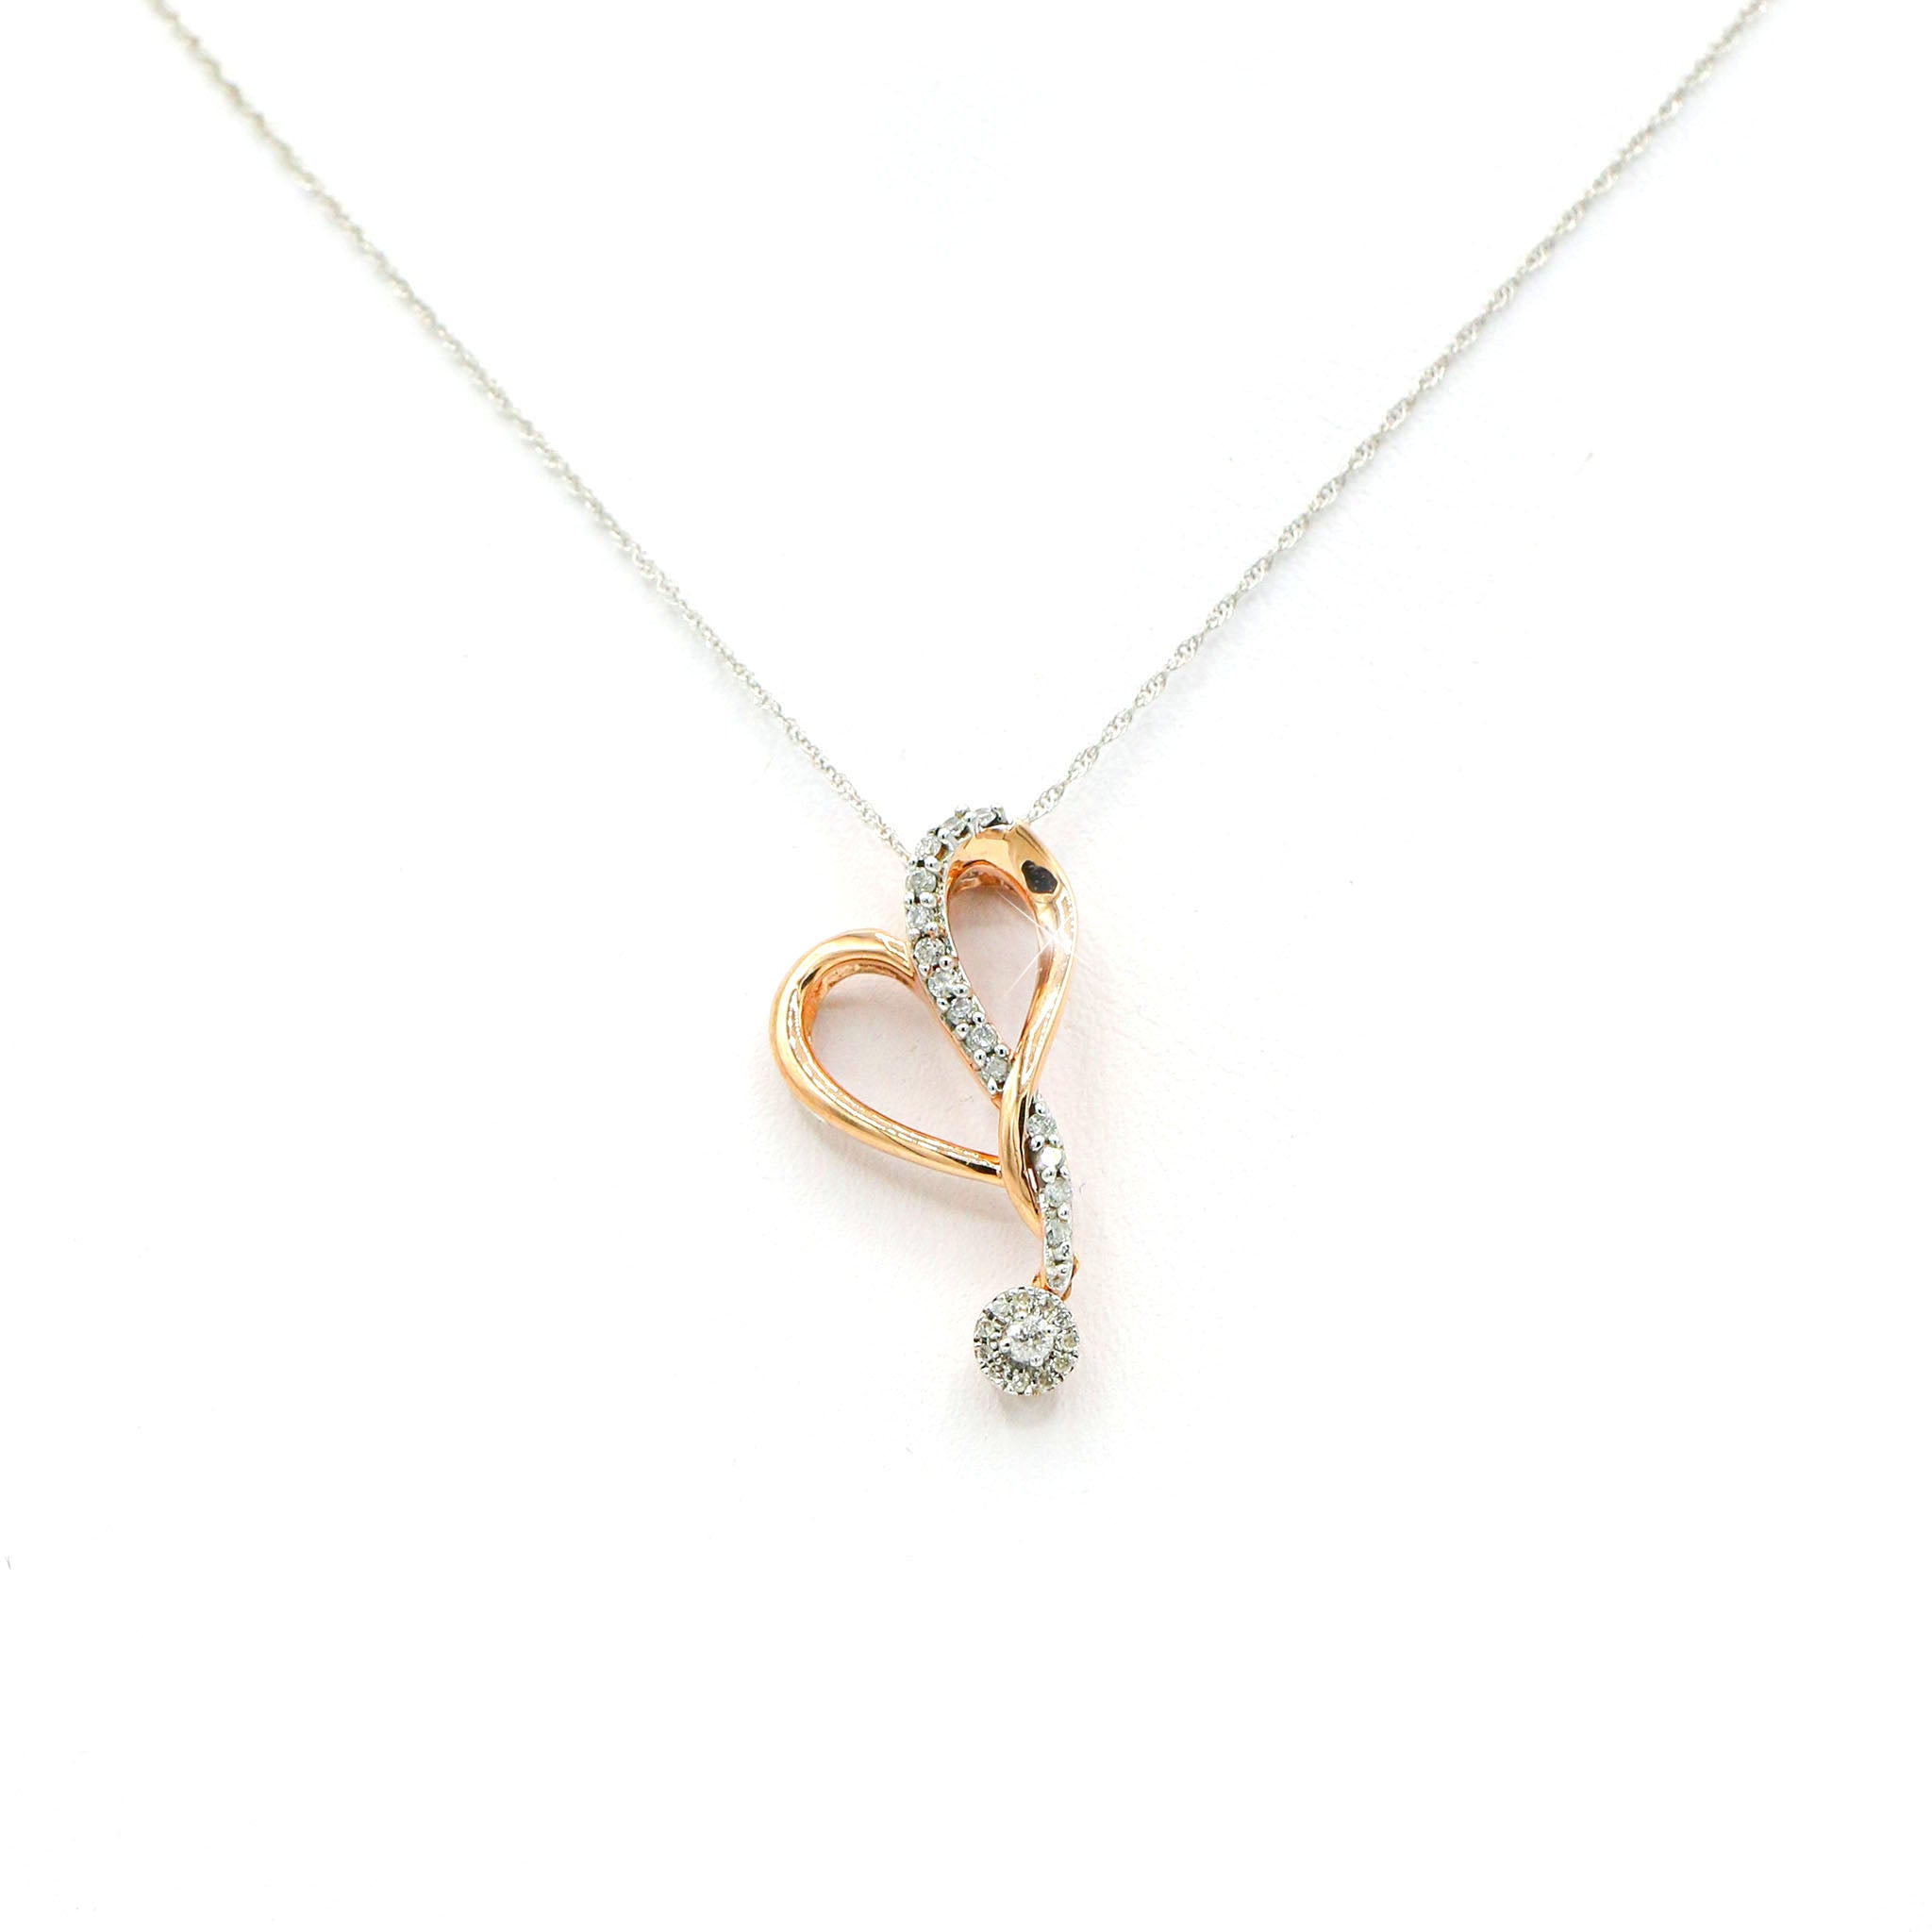 Gorgeous 10K Rose Gold Heart Drop Diamond Pendant (0.17ct Carat Diamond Weight)